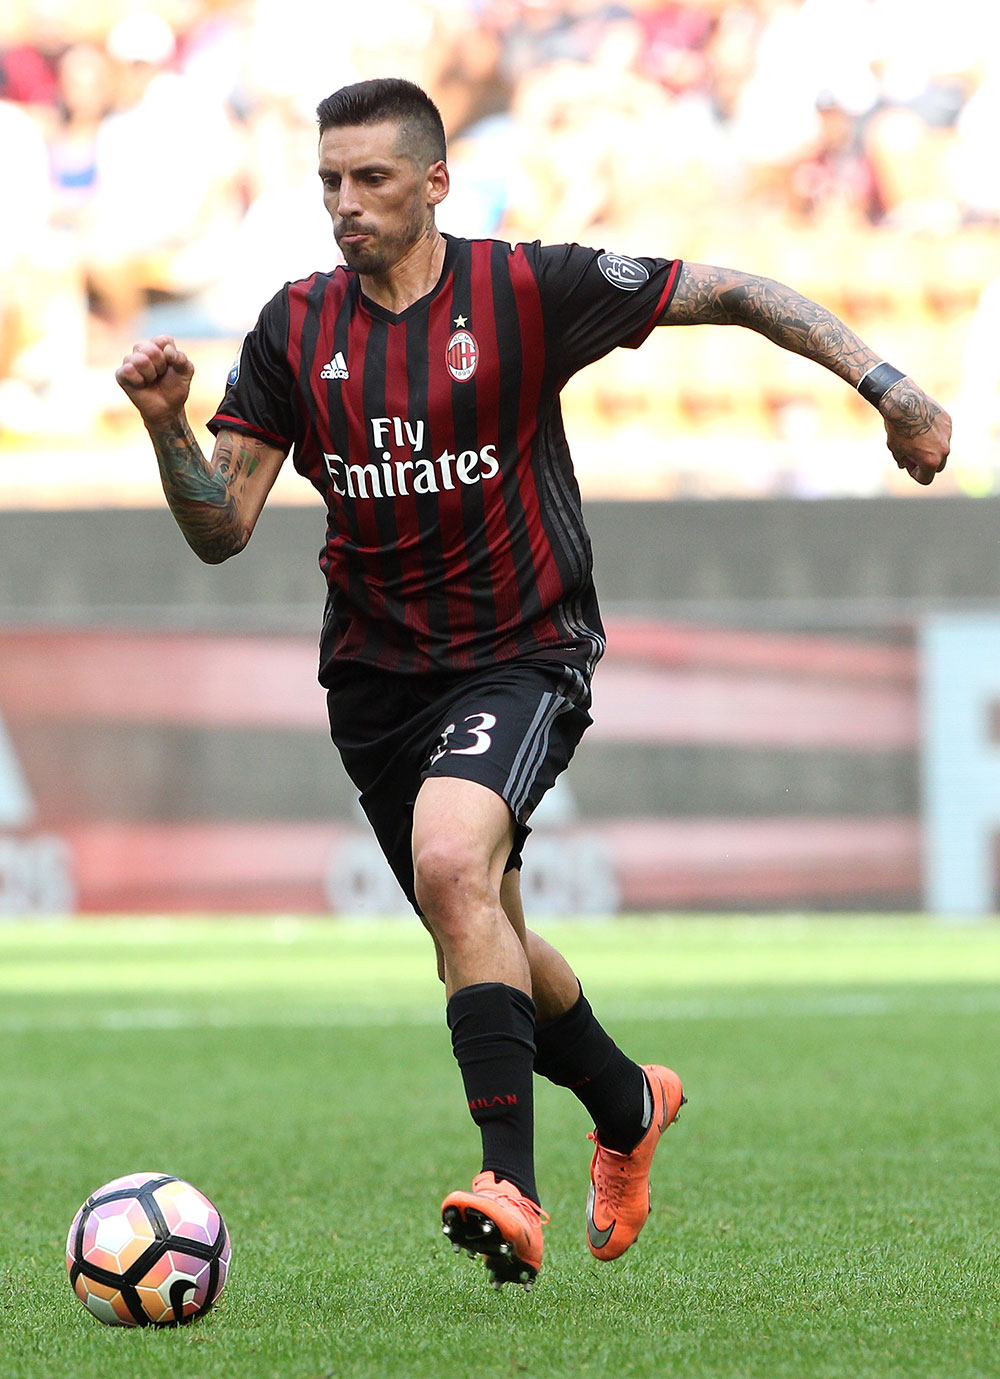 Jose Sosa during Milan-Udinese at Stadio San Siro on September 11, 2016. (Photo by Marco Luzzani/Getty Images)